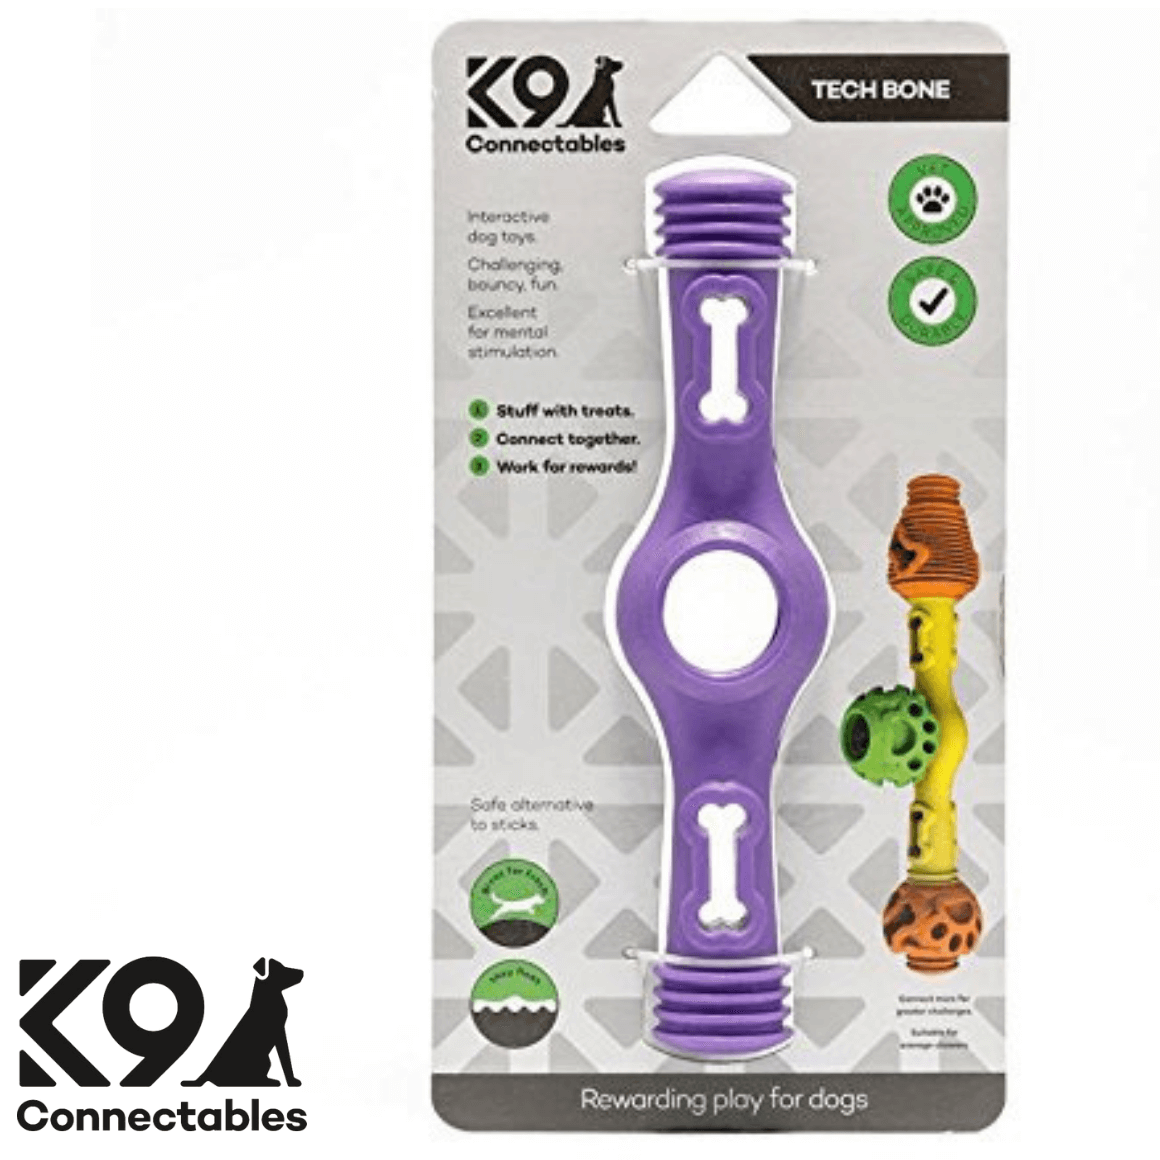 k9 Connectables Australia - The Tech Bone Purple